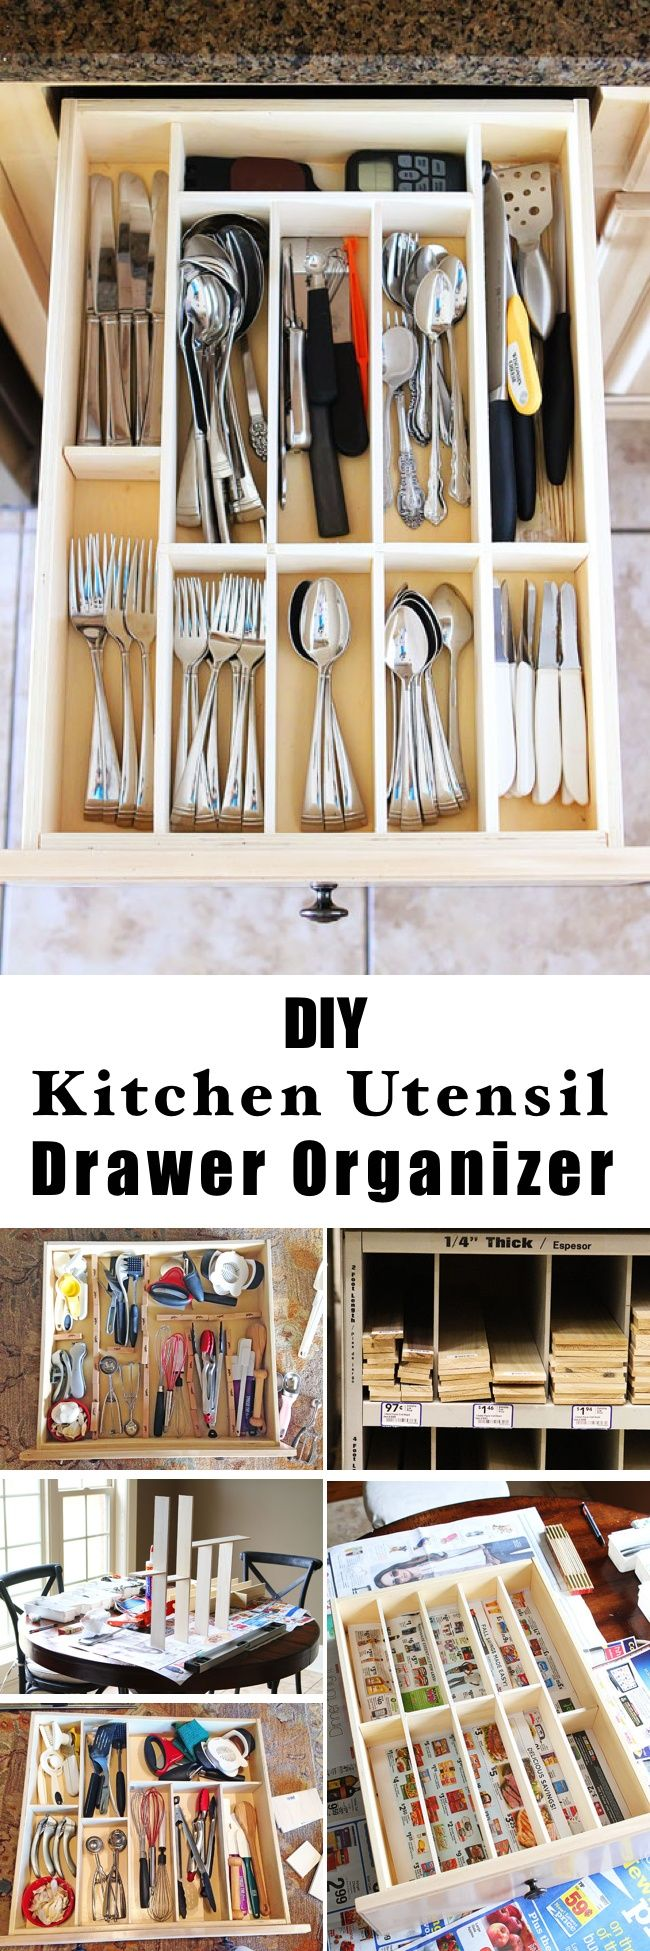 Best 25+ Kitchen utensil storage ideas on Pinterest | Utensil ...